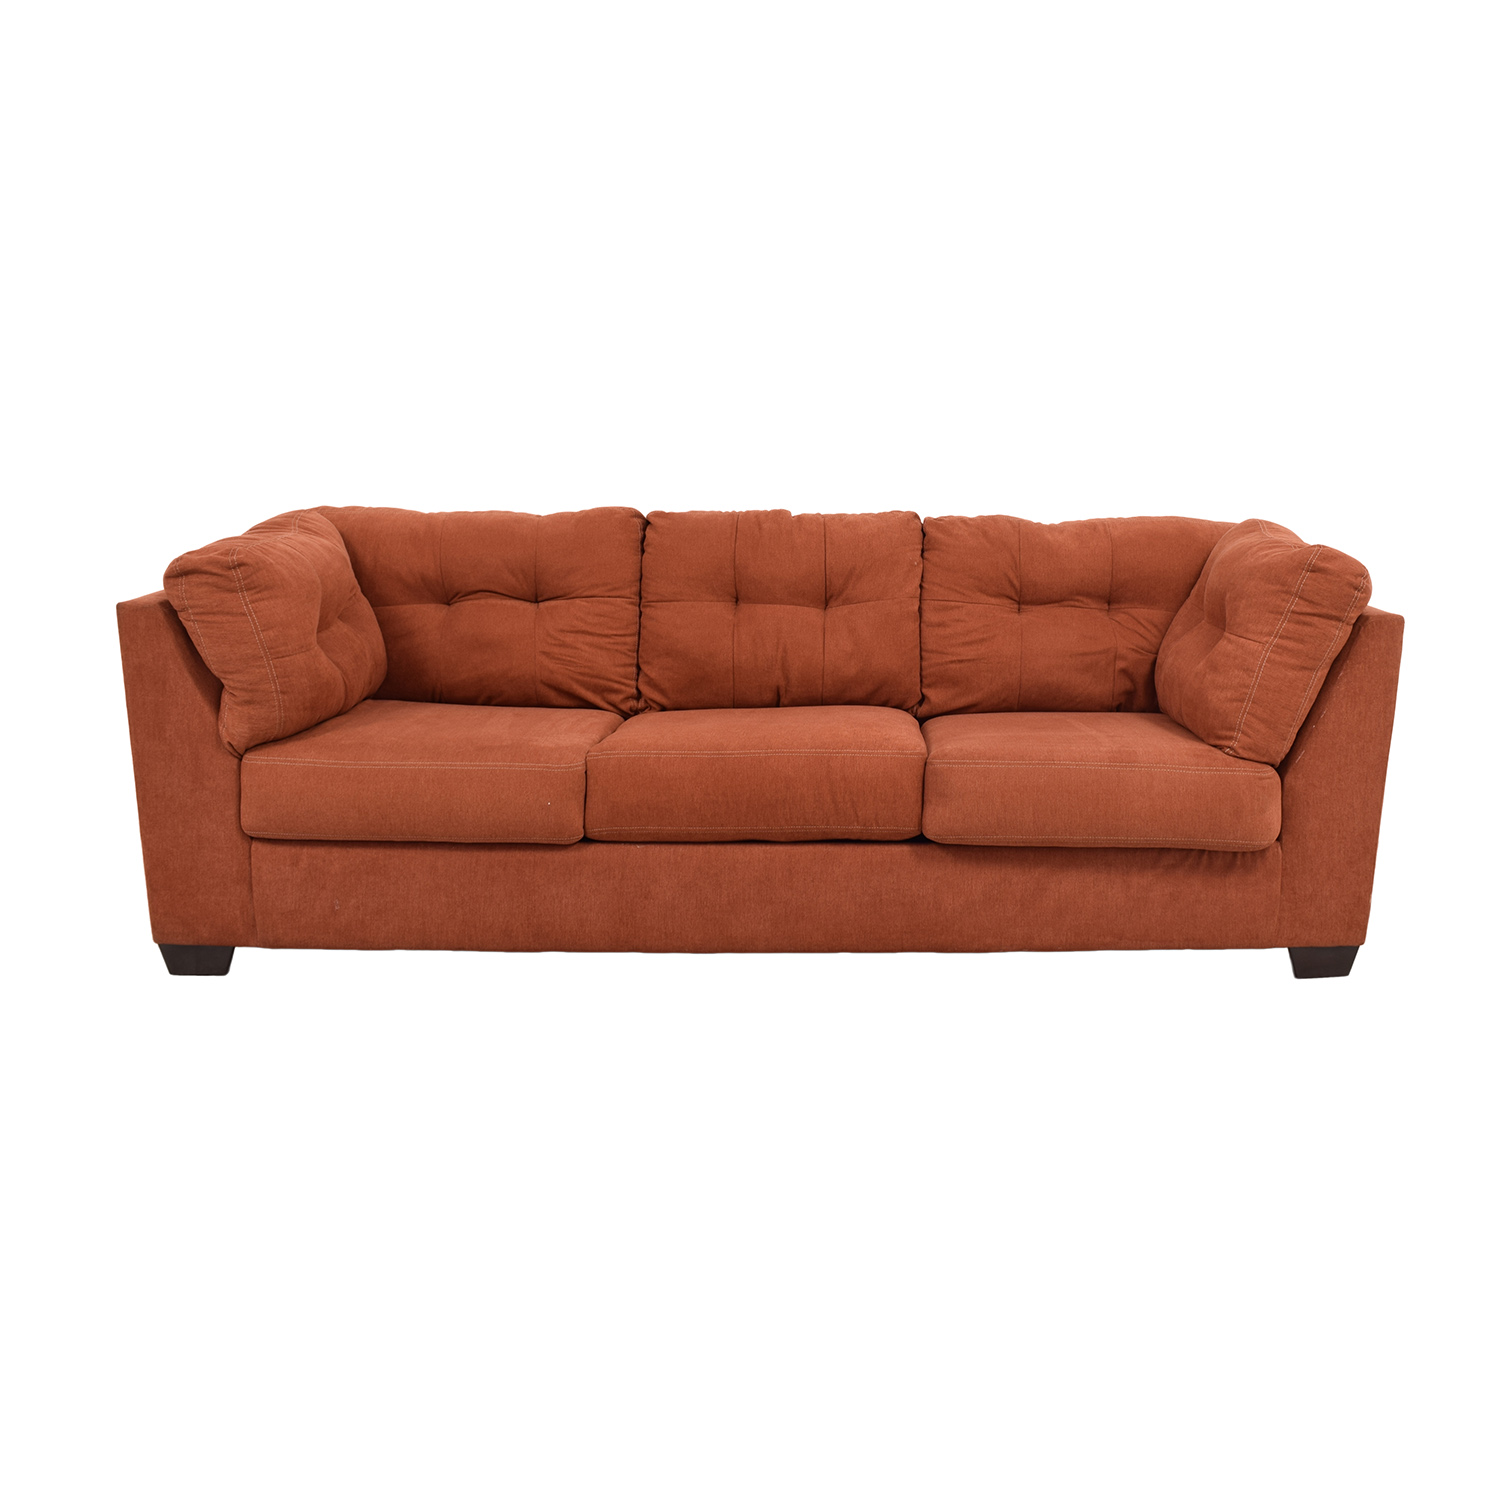 51% OFF Ashley Furniture Ashley Furniture Delta City Rust Tufted